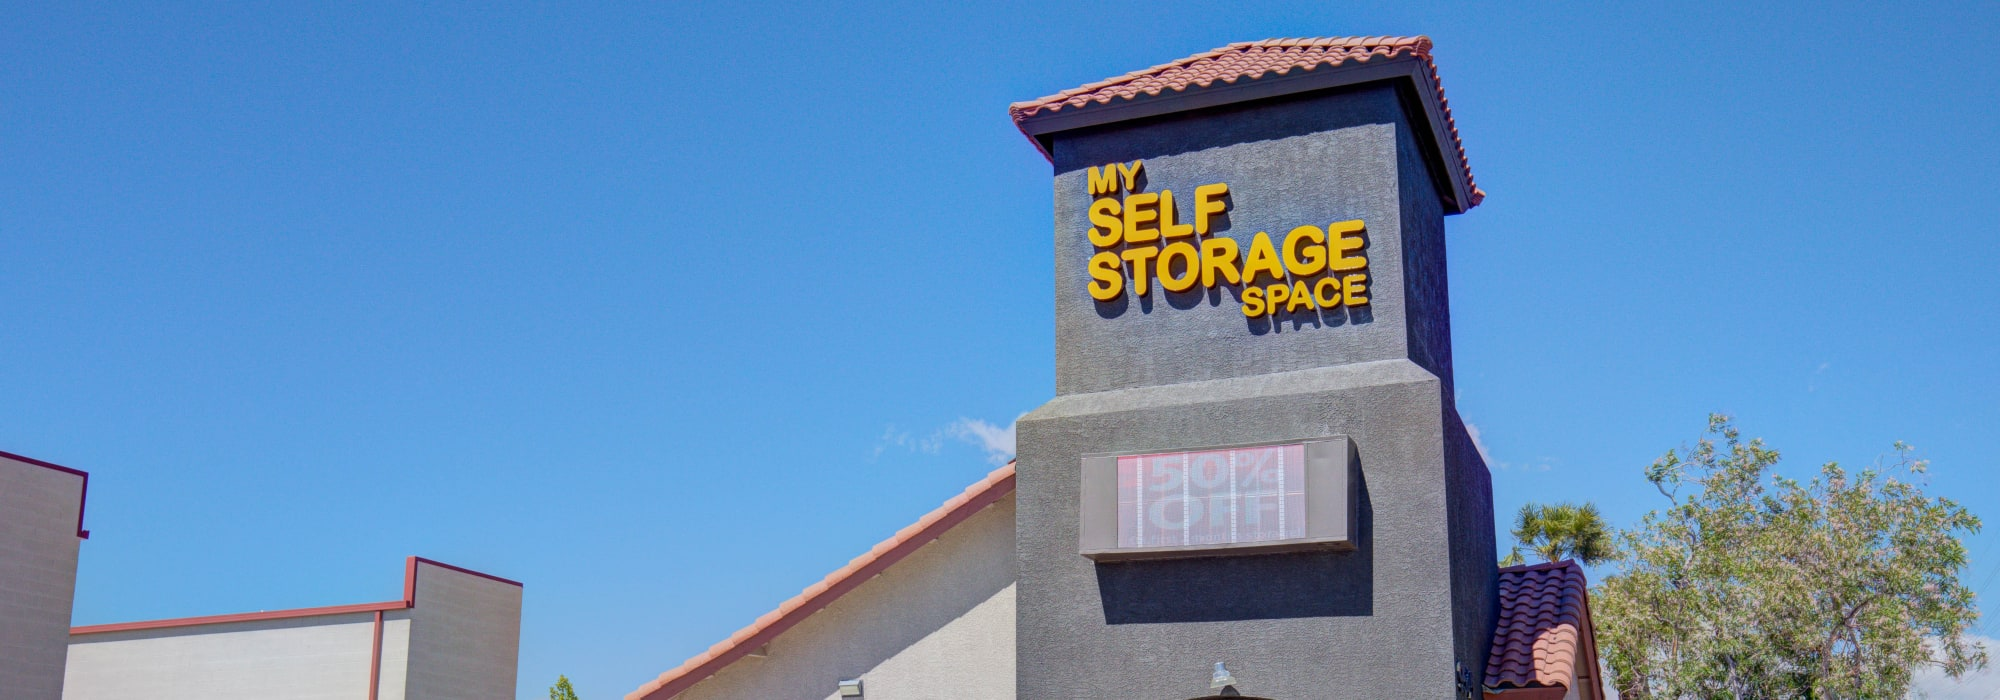 My Self Storage Space in Spring Valley, Nevada